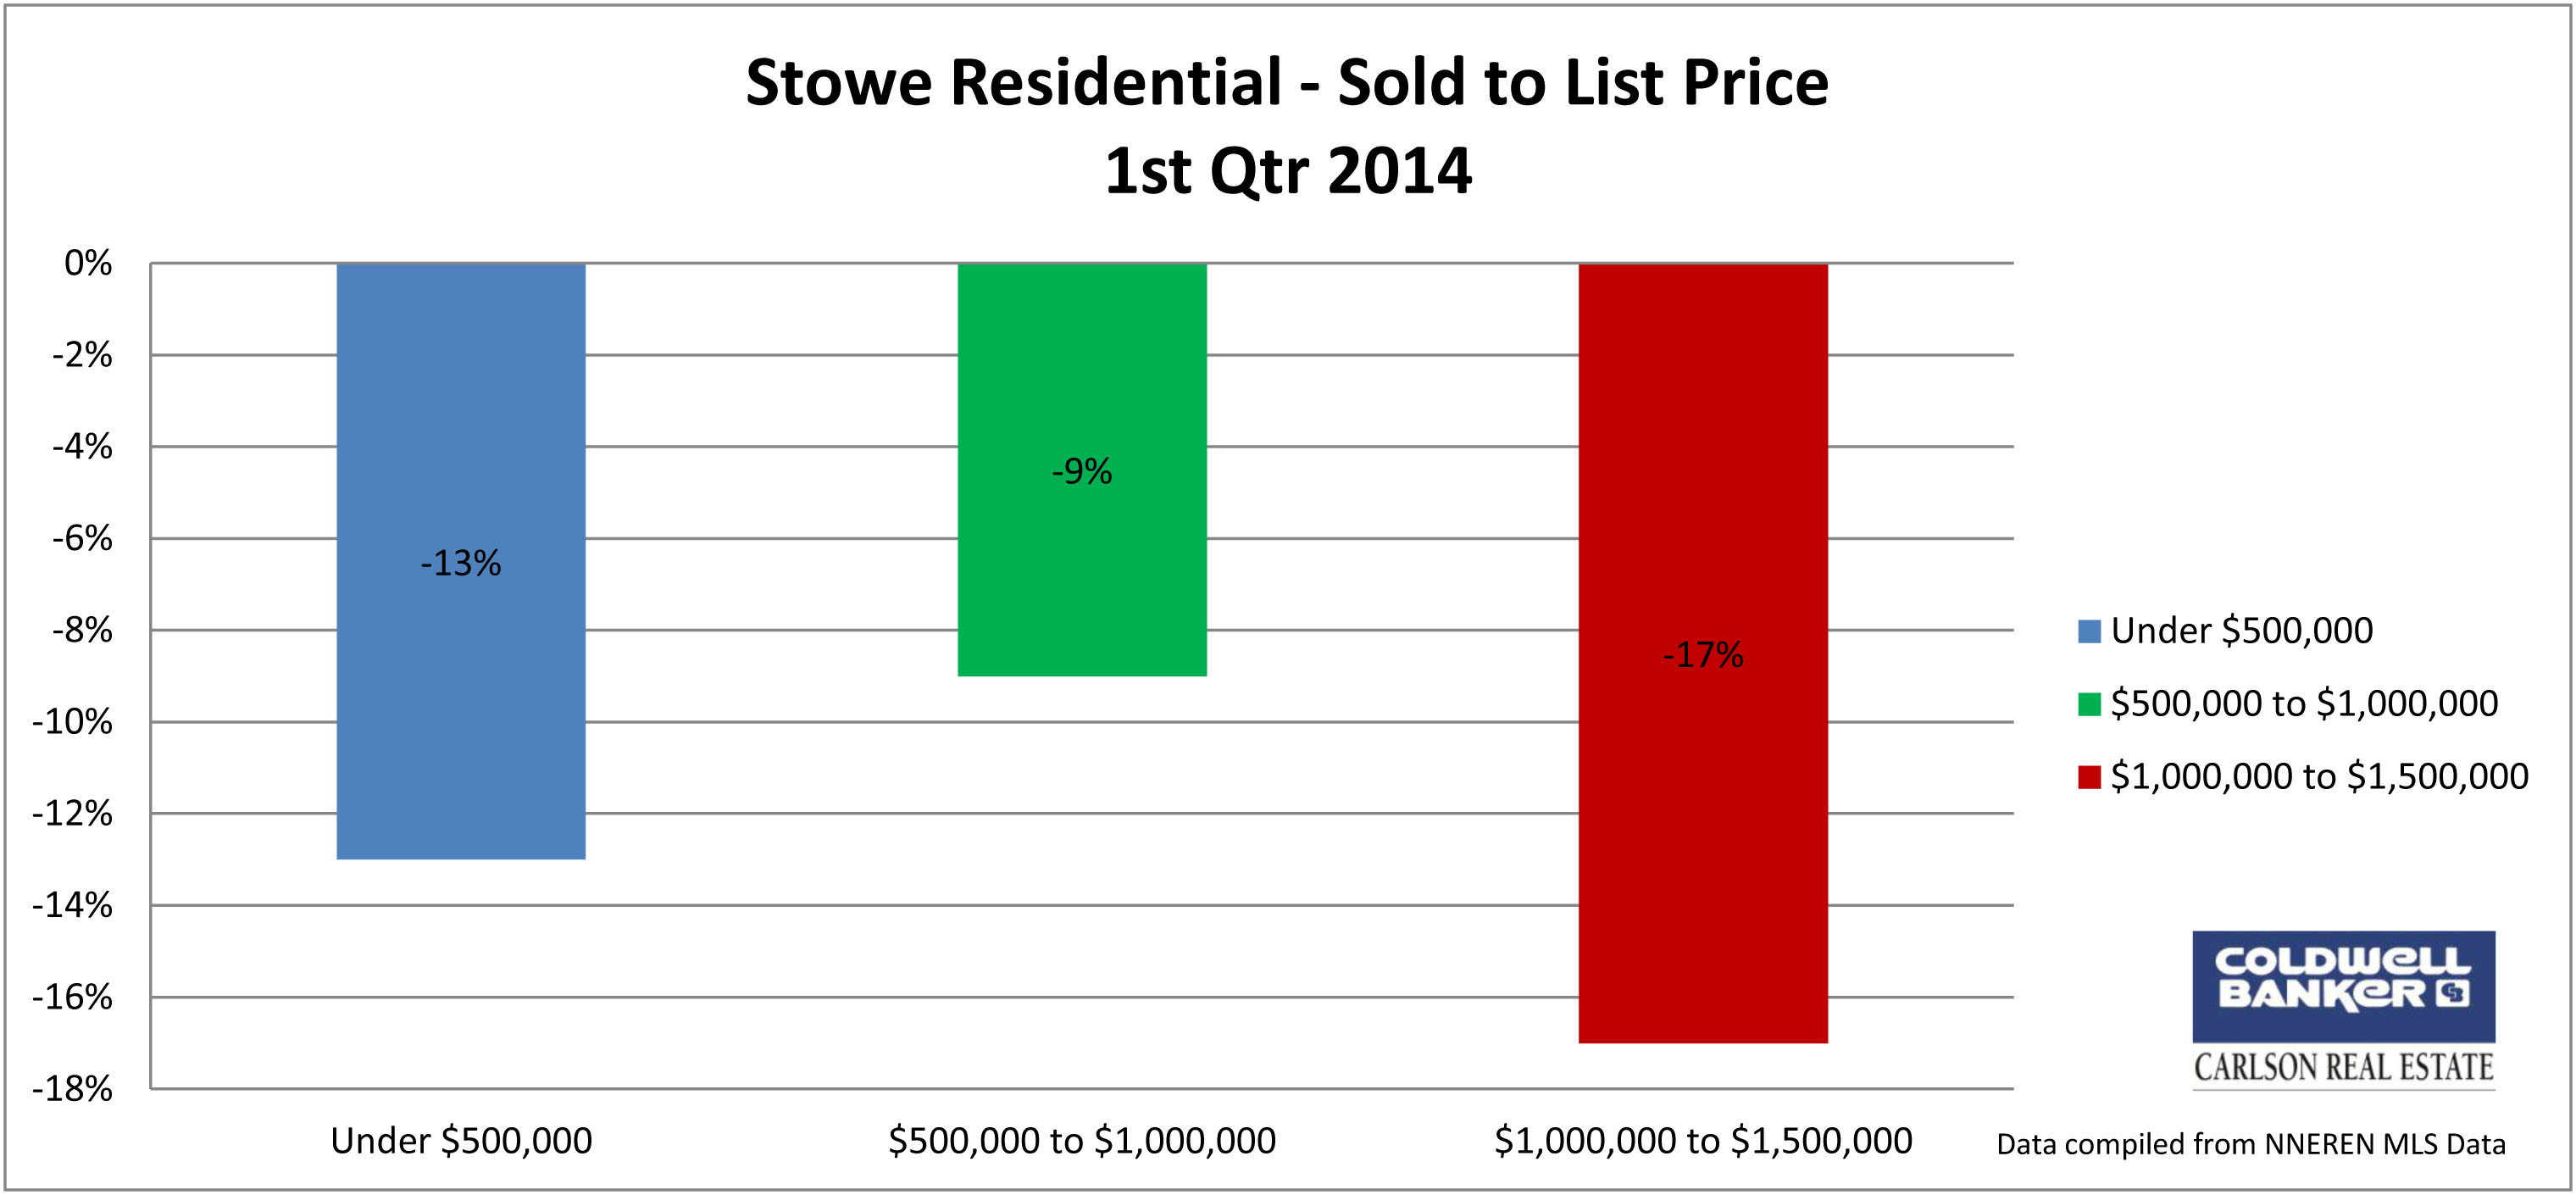 Stowe Residential Sold to List Price